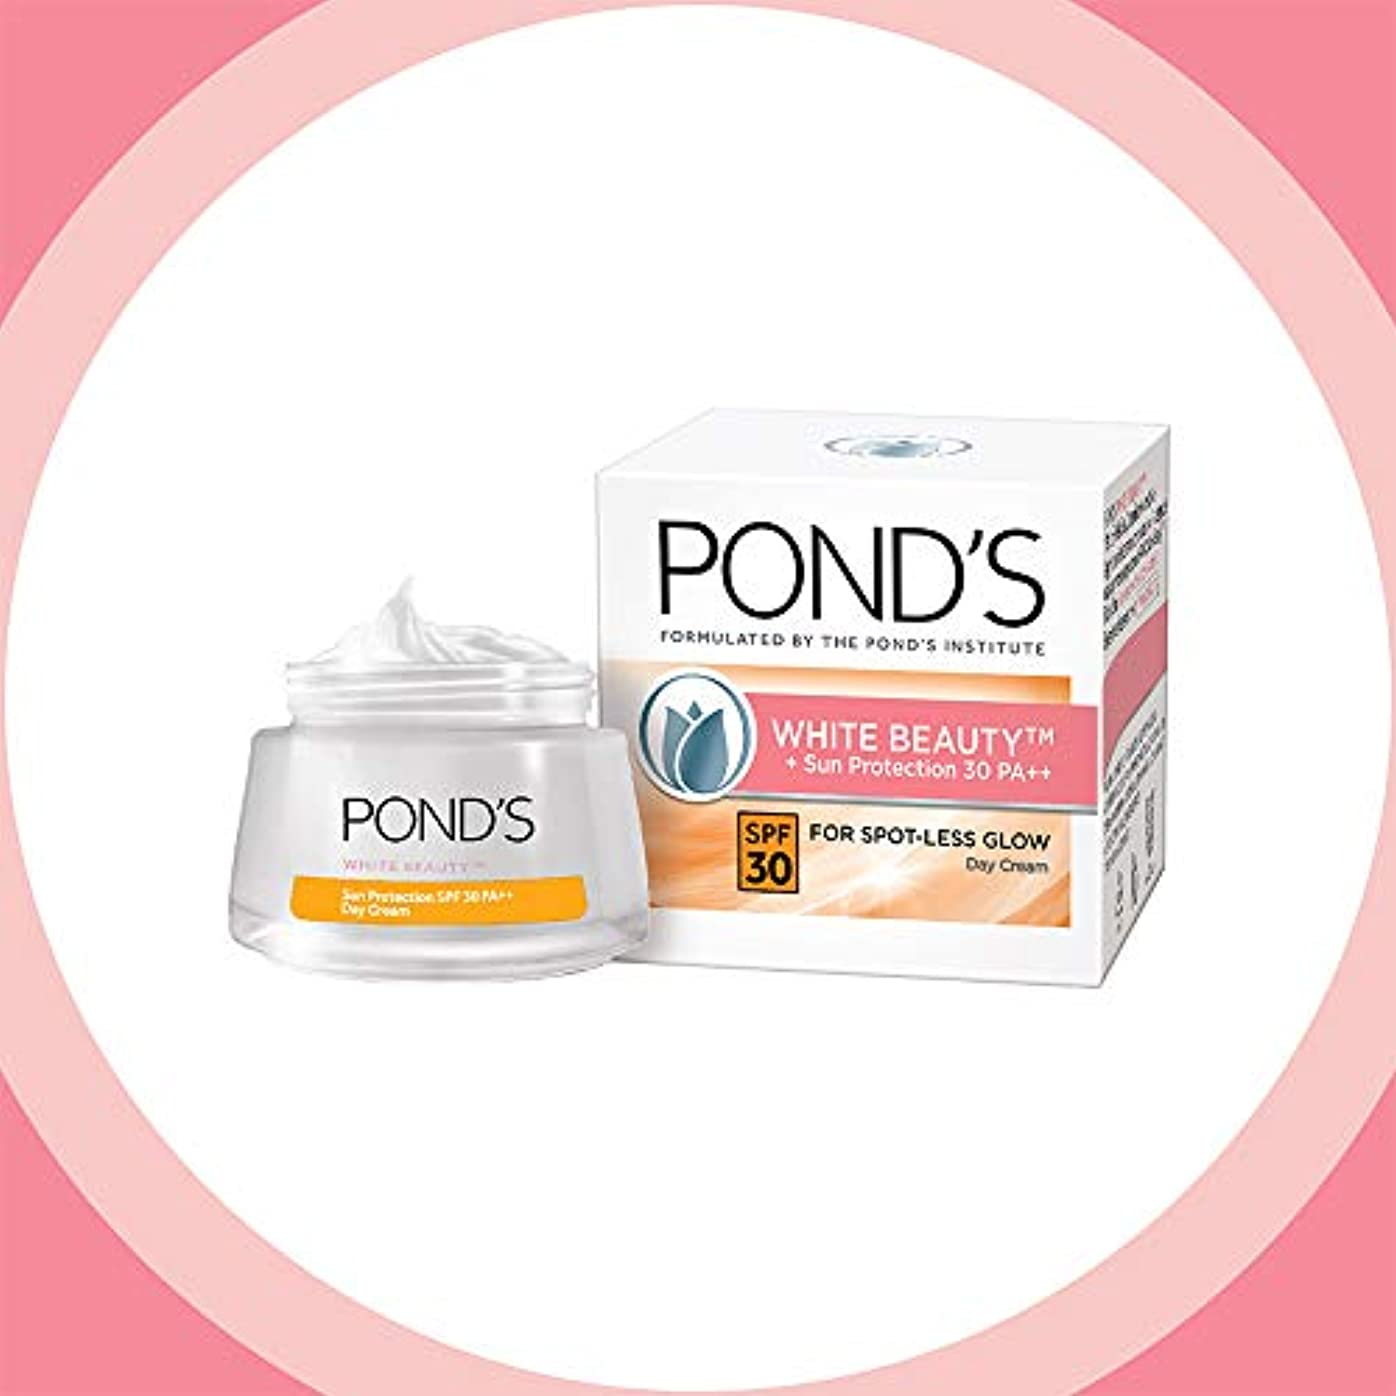 事前にレーダーライバルPOND'S White Beauty Sun Protection SPF 30 Day Cream, 50 g